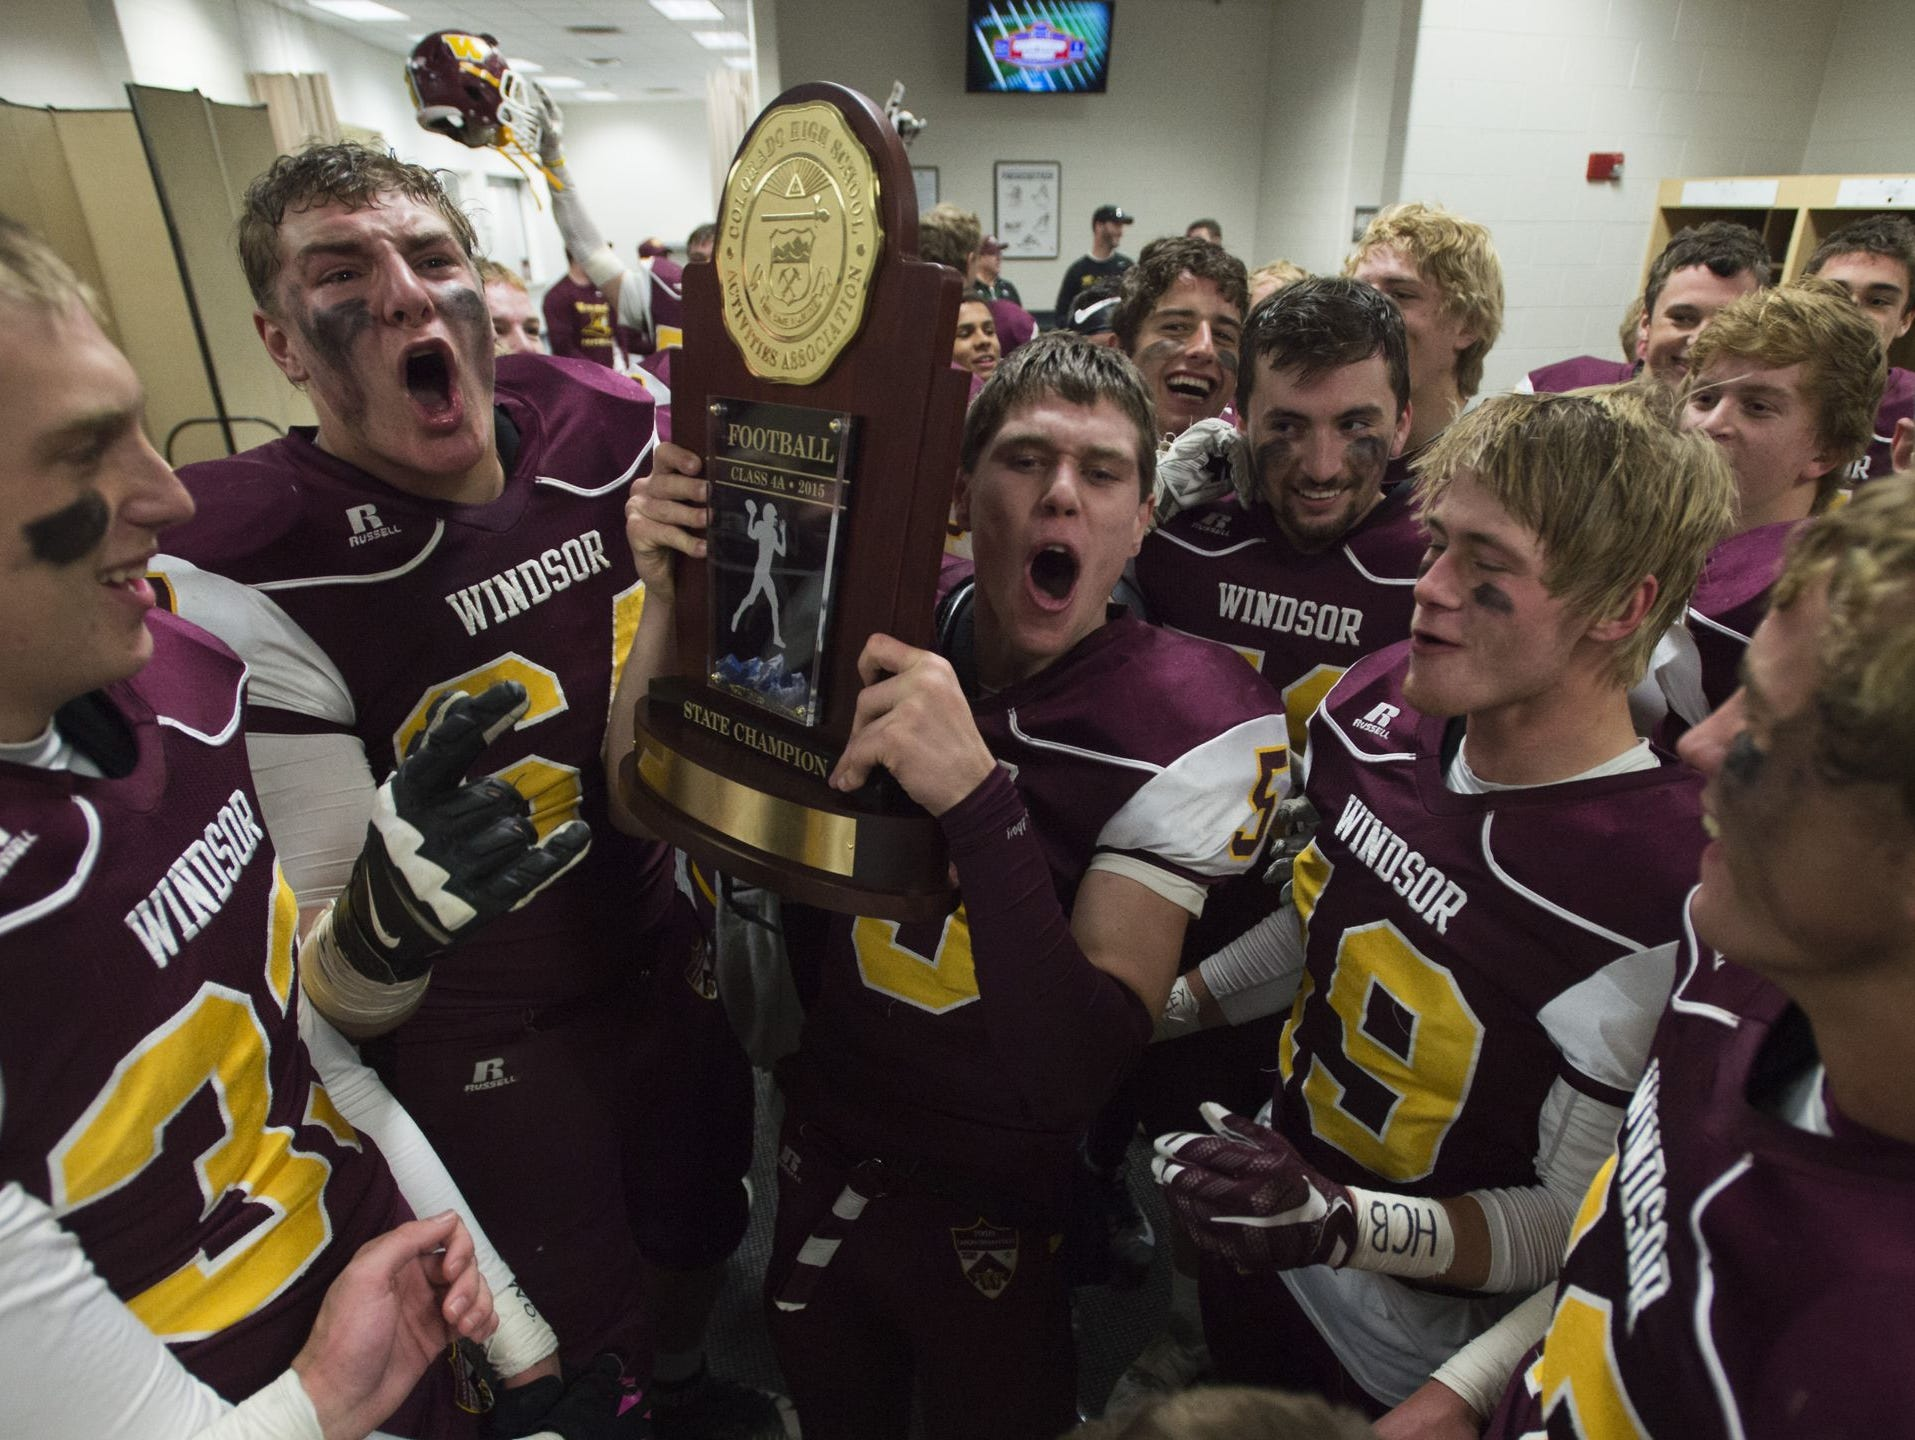 The Windsor High School football team celebrates with the Class 4A trophy at Sports Authority Field at Mile High.